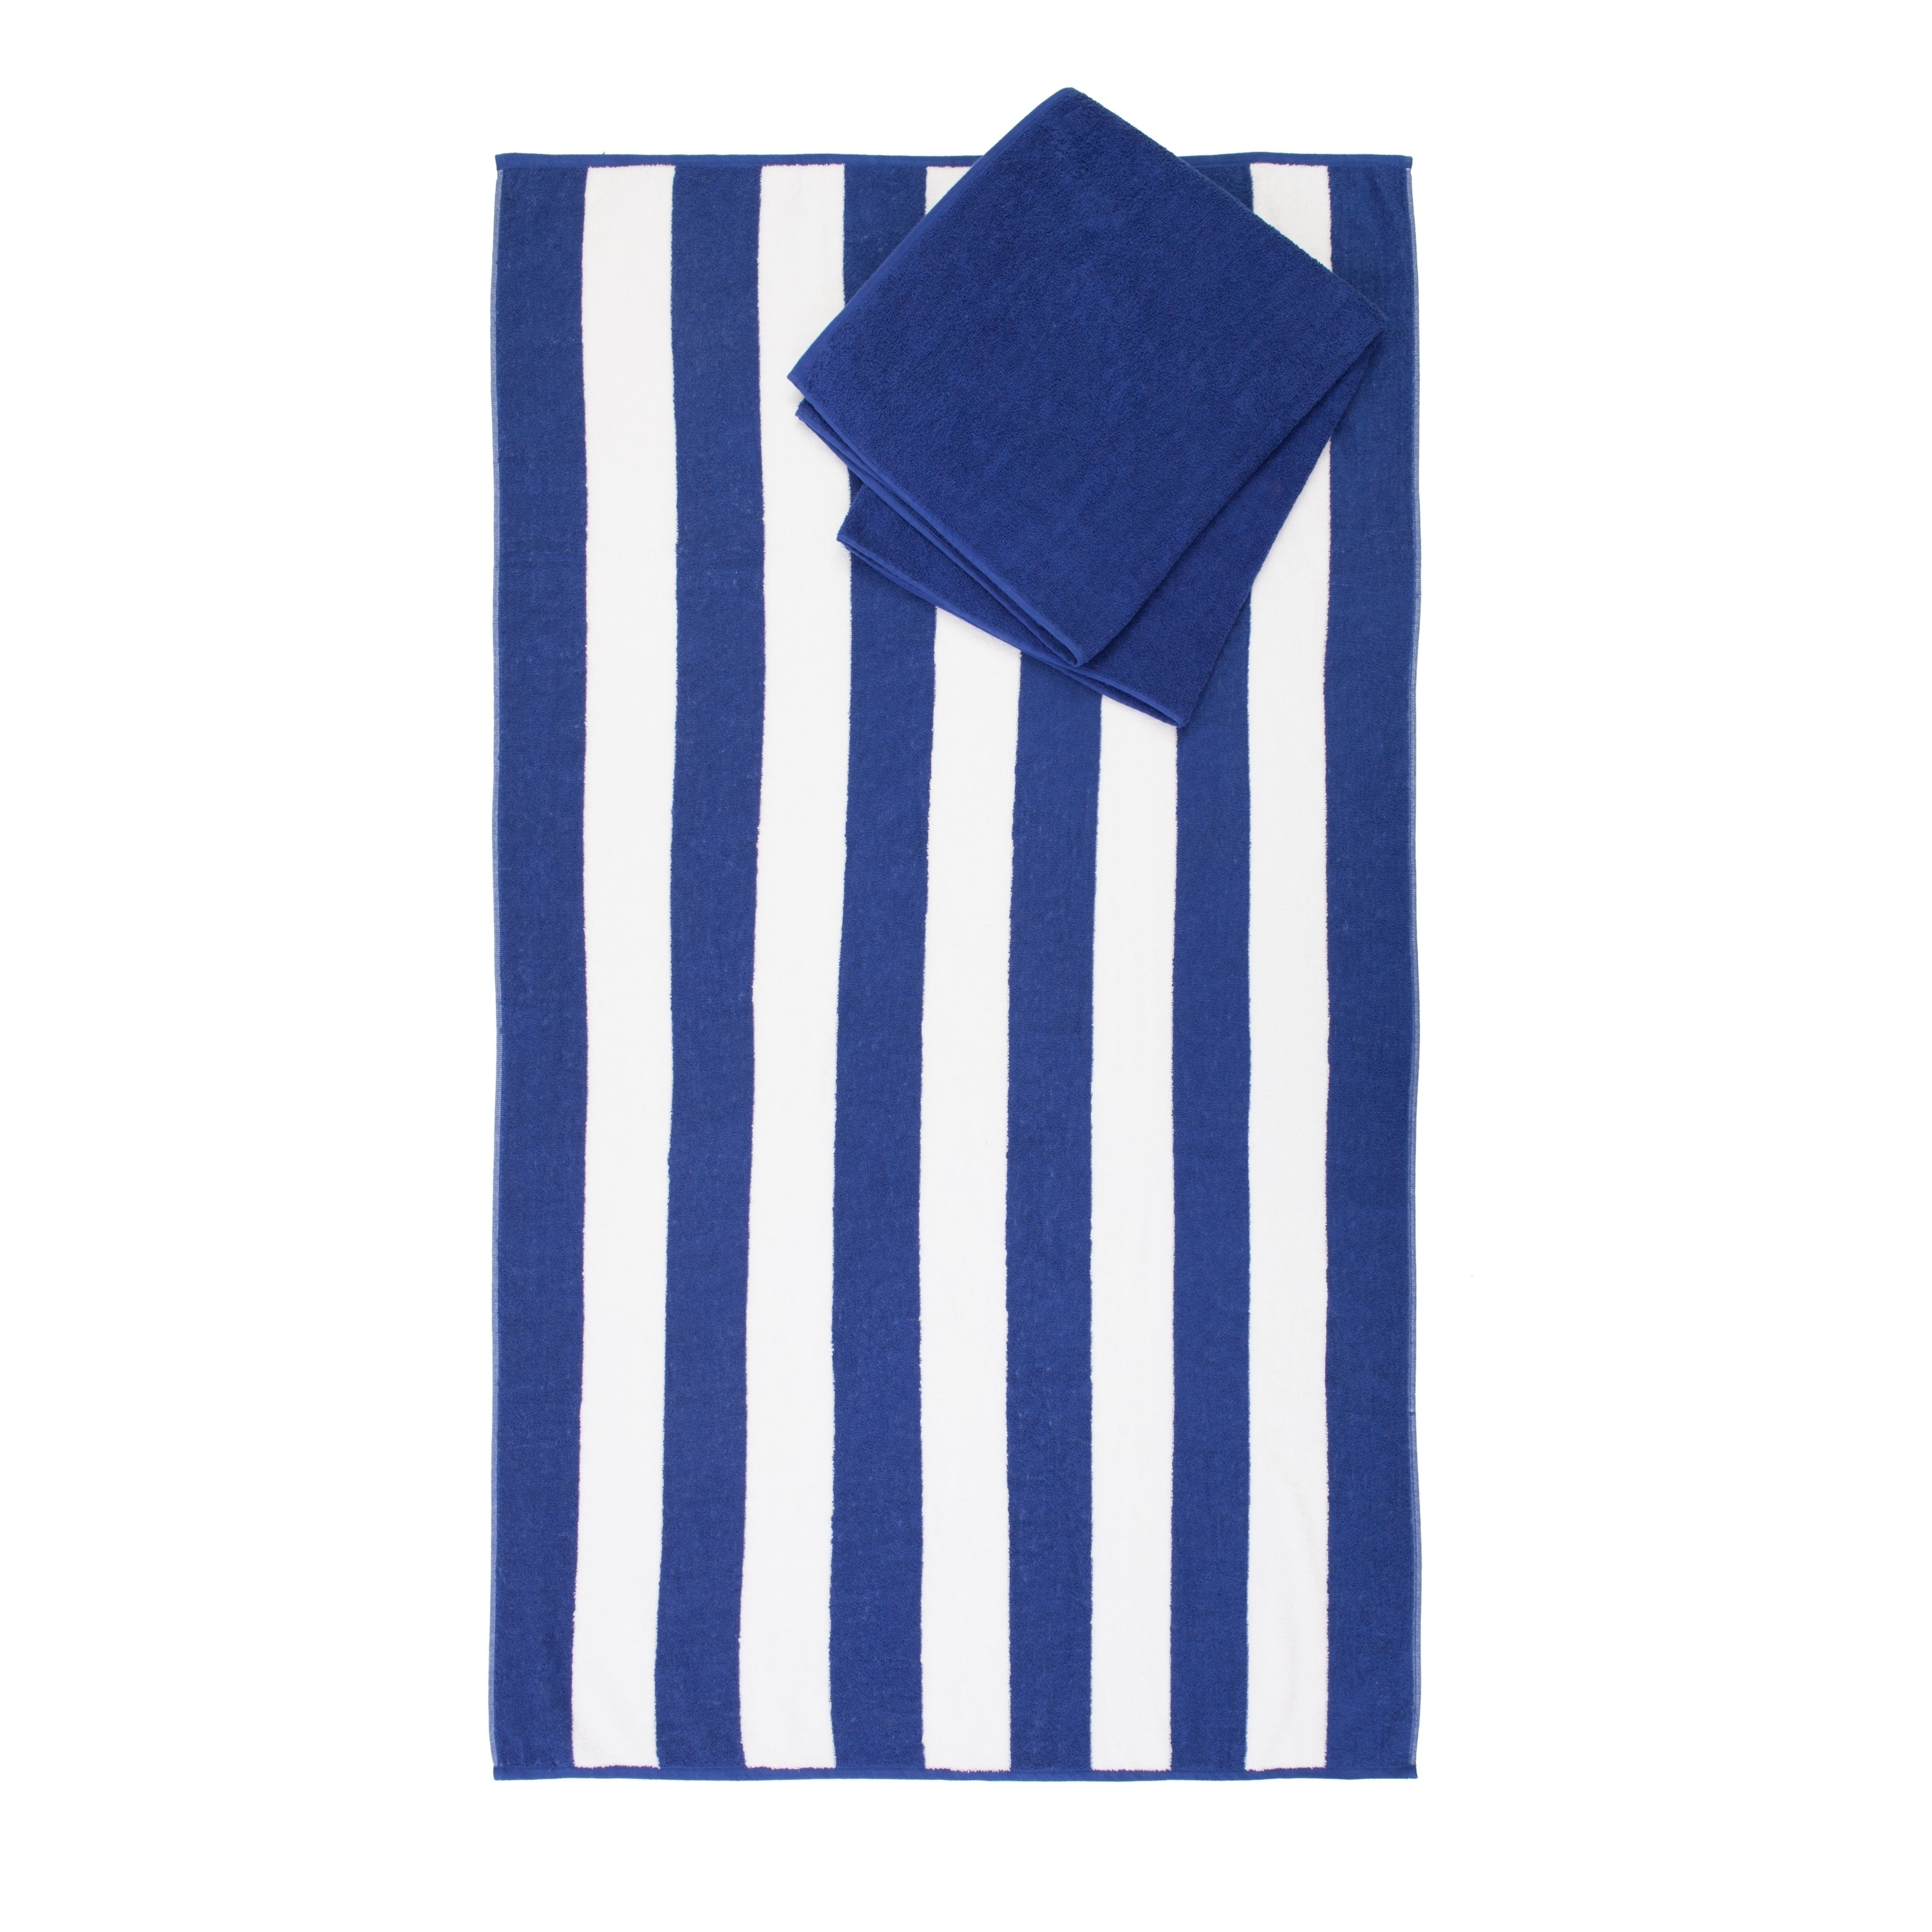 Savannah 2 Piece Beach Towel Set in Navy